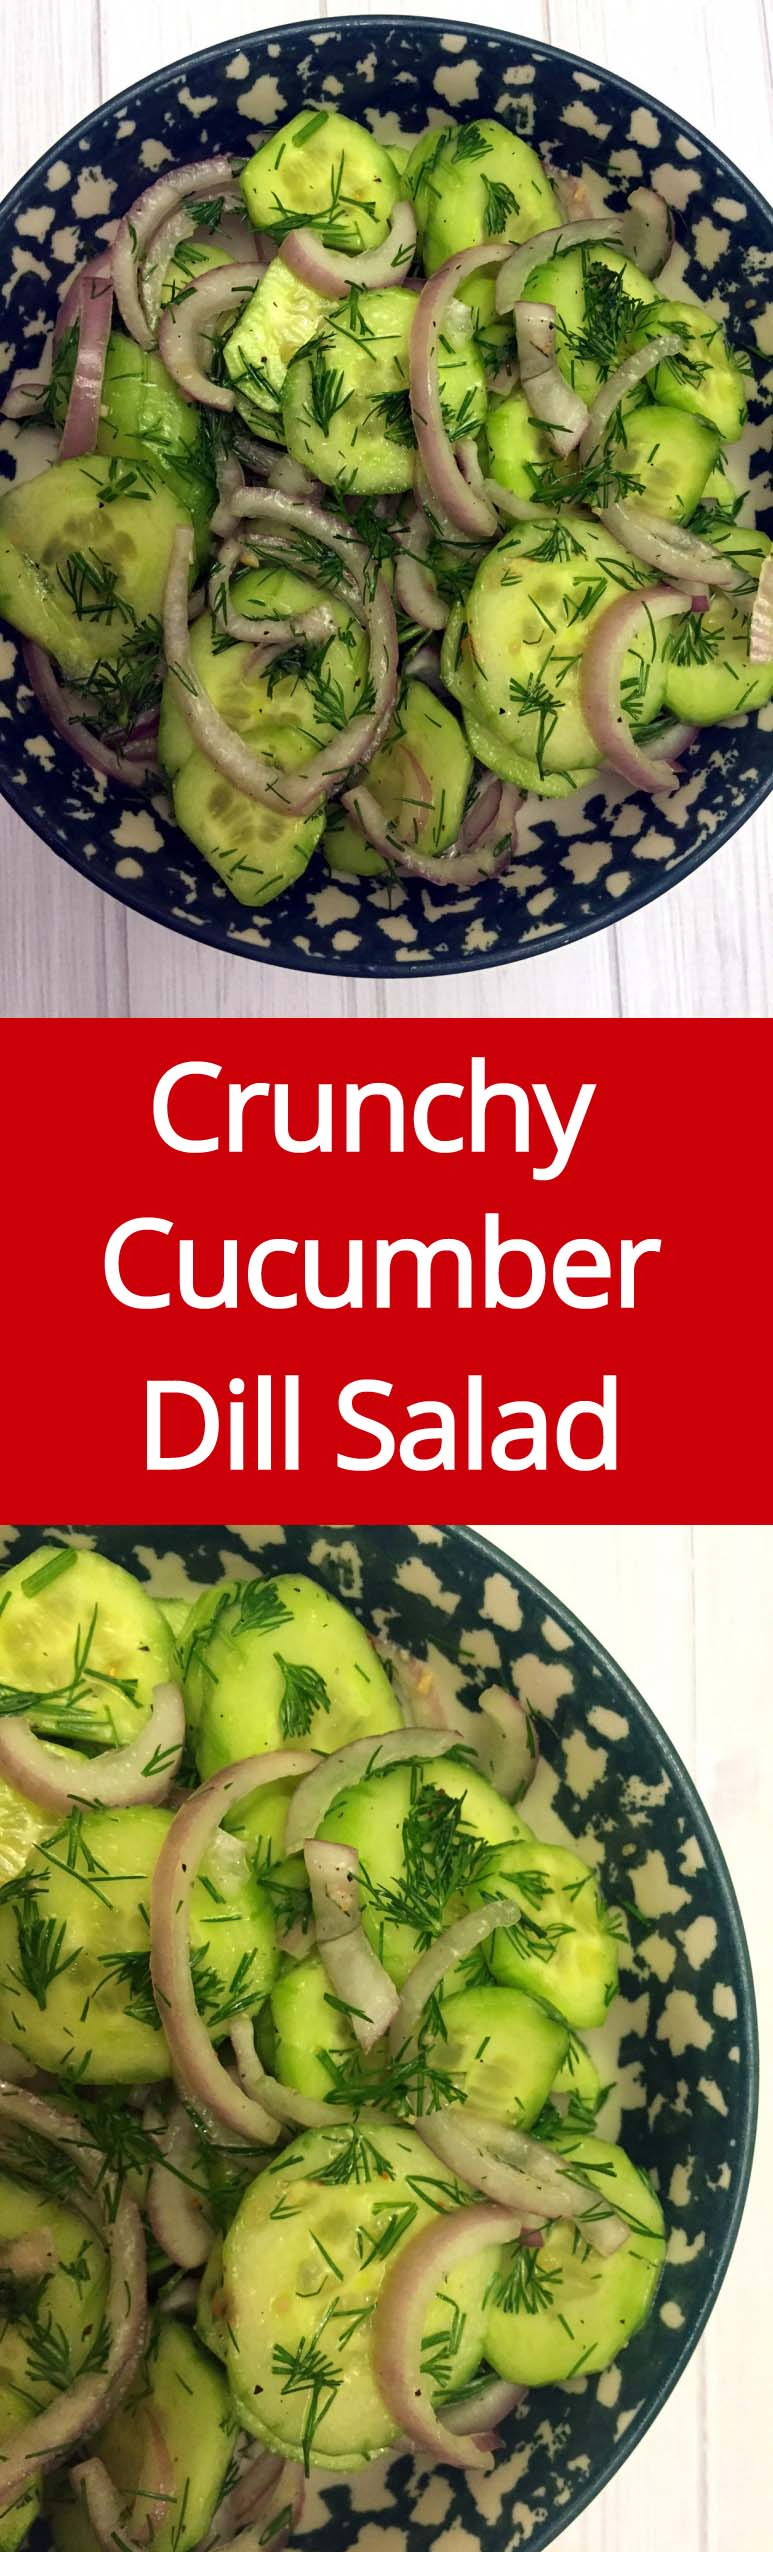 Easy Crunchy Cucumber Dill Salad Recipe With Red Onions | MelanieCooks.com